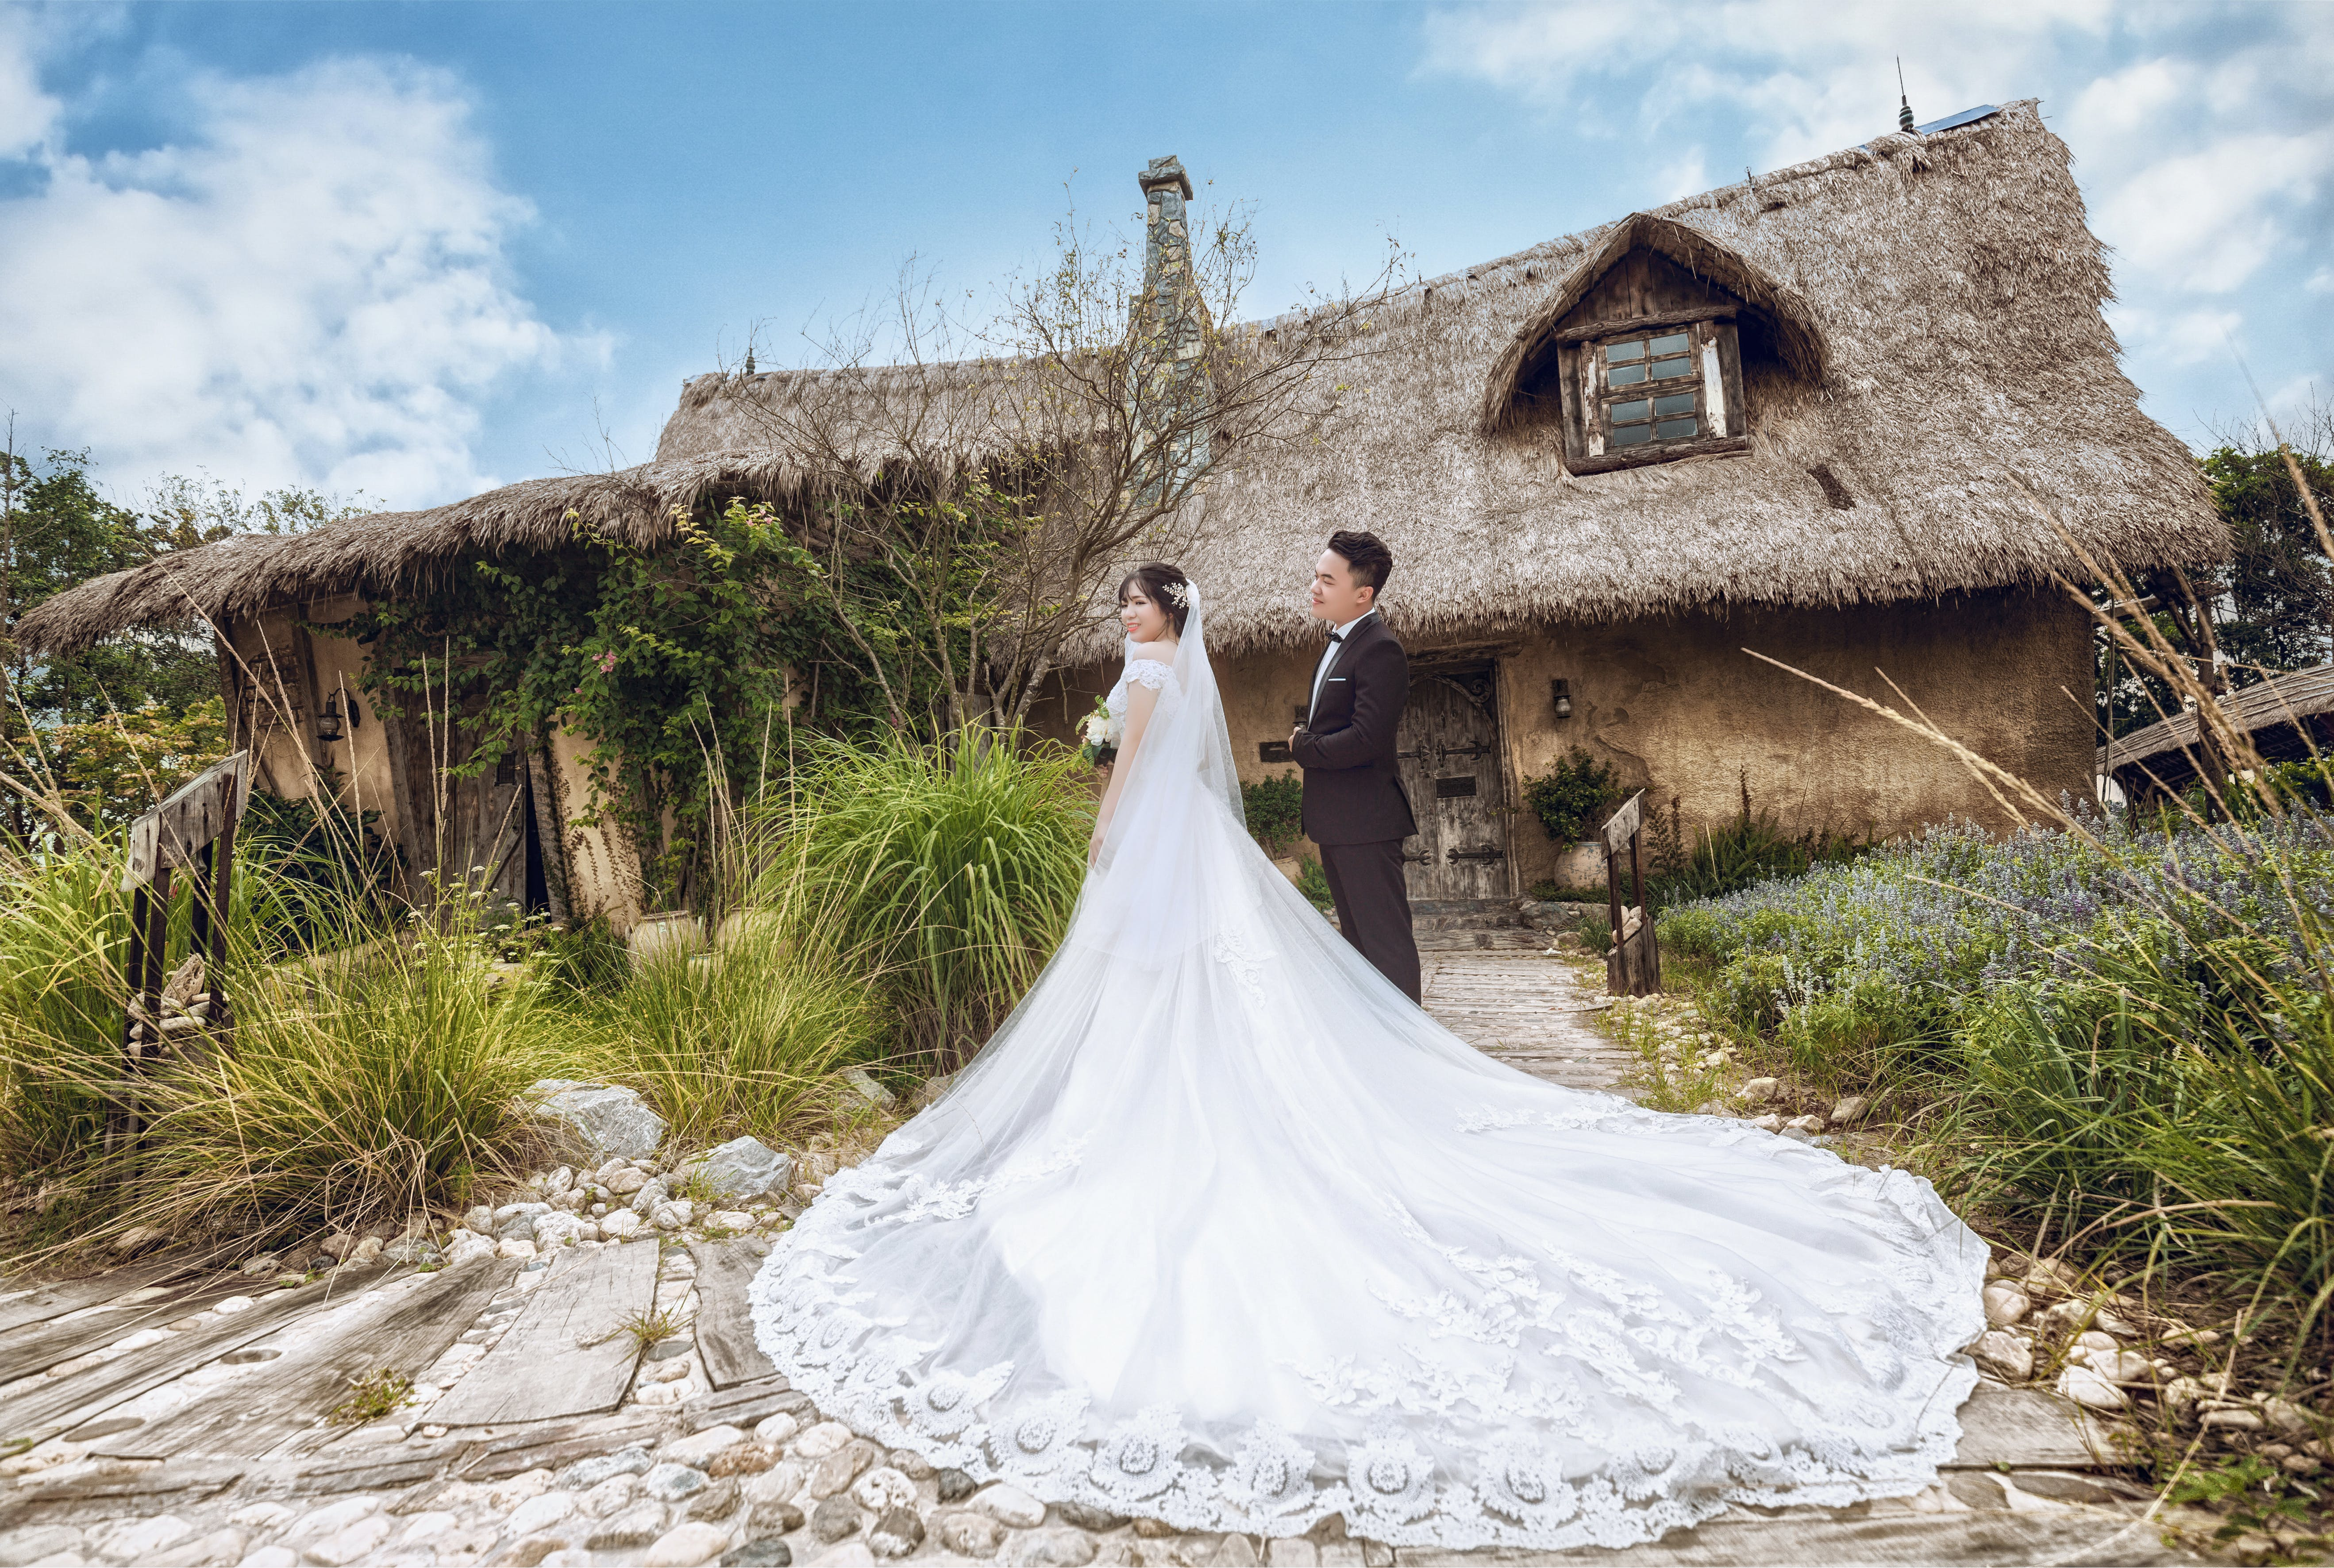 Man and Woman Wearing Wedding Outfits